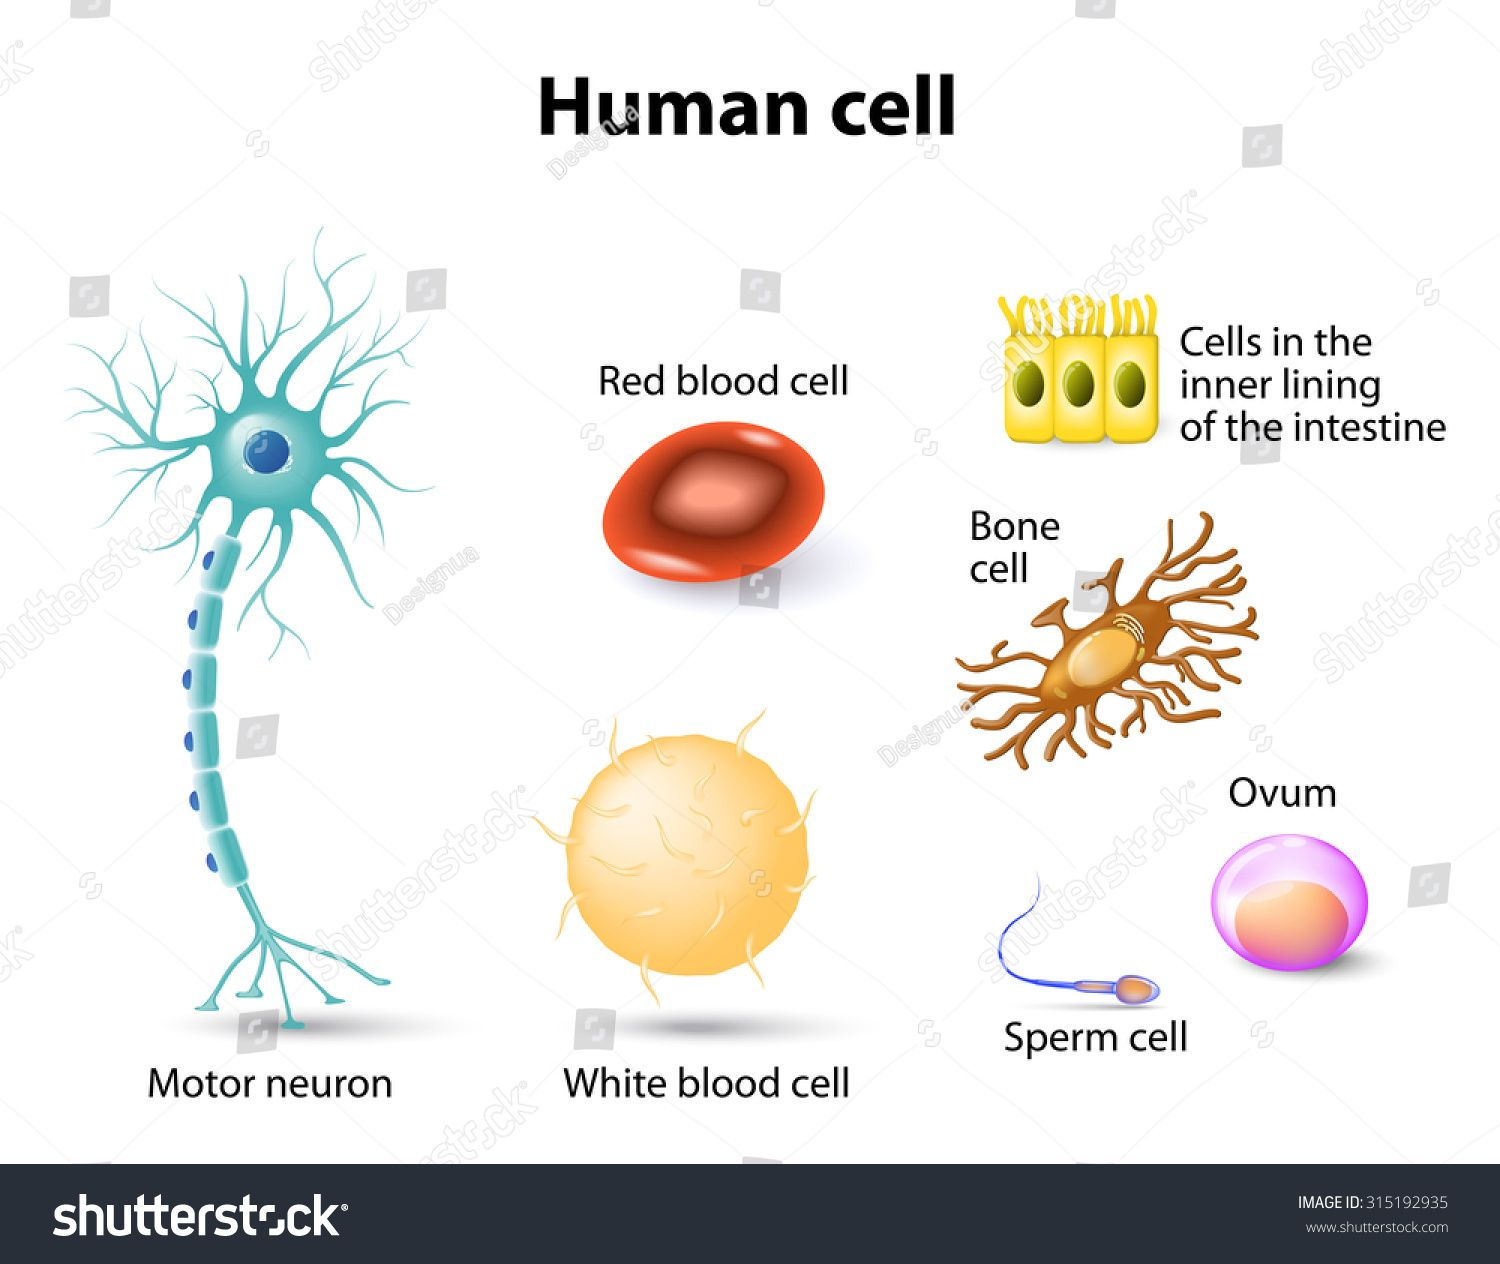 hight resolution of human cell motor neuron red blood cell and white blood cell bone cell sperm cell and ovum